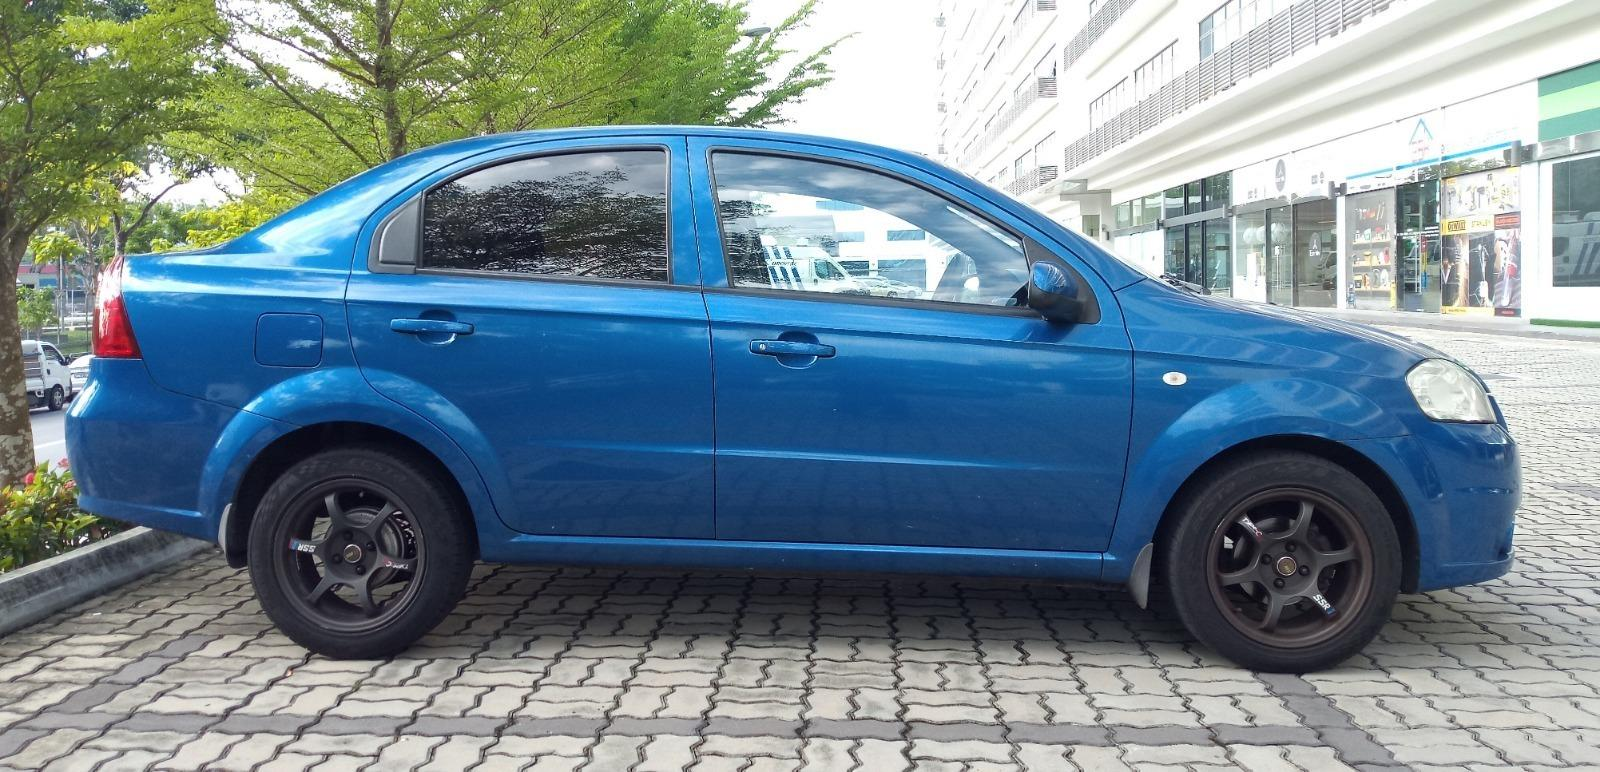 Chevrolet Aveo 1.4A Seden Fuel Efficient & Cheapest In The Market!